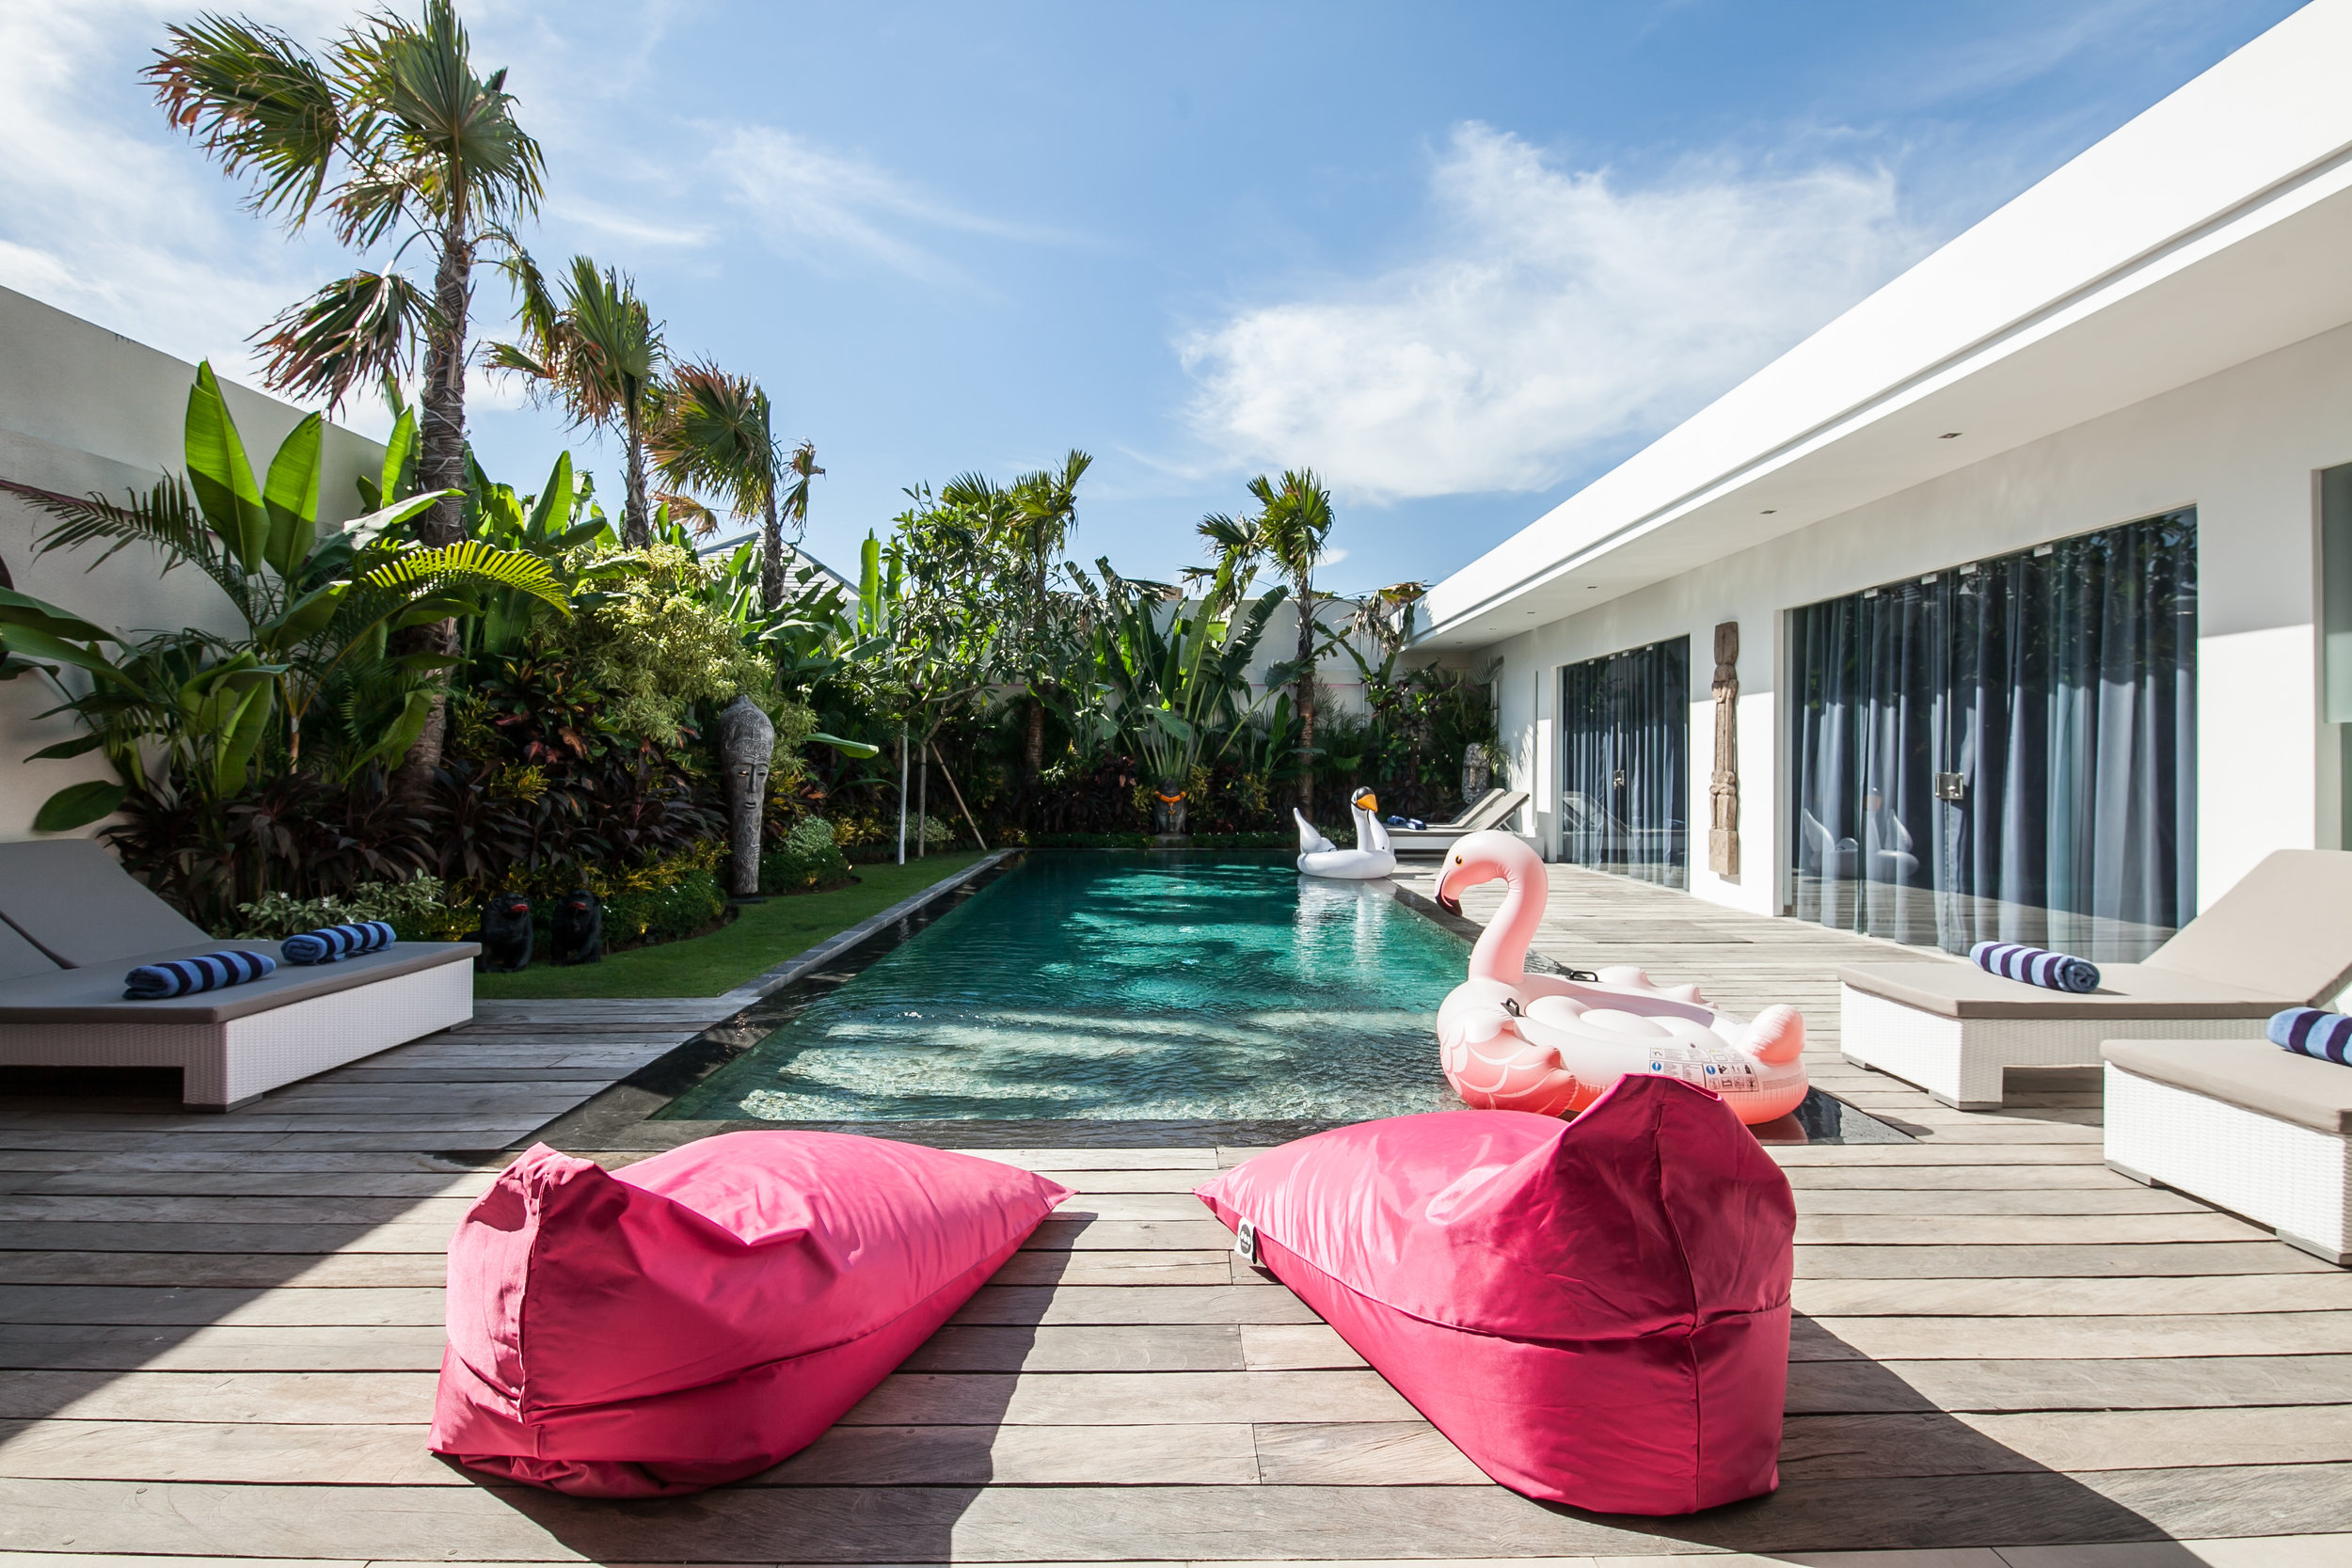 3 bedrooms villa located in Seminyak, you'll loved the comfort it provides!